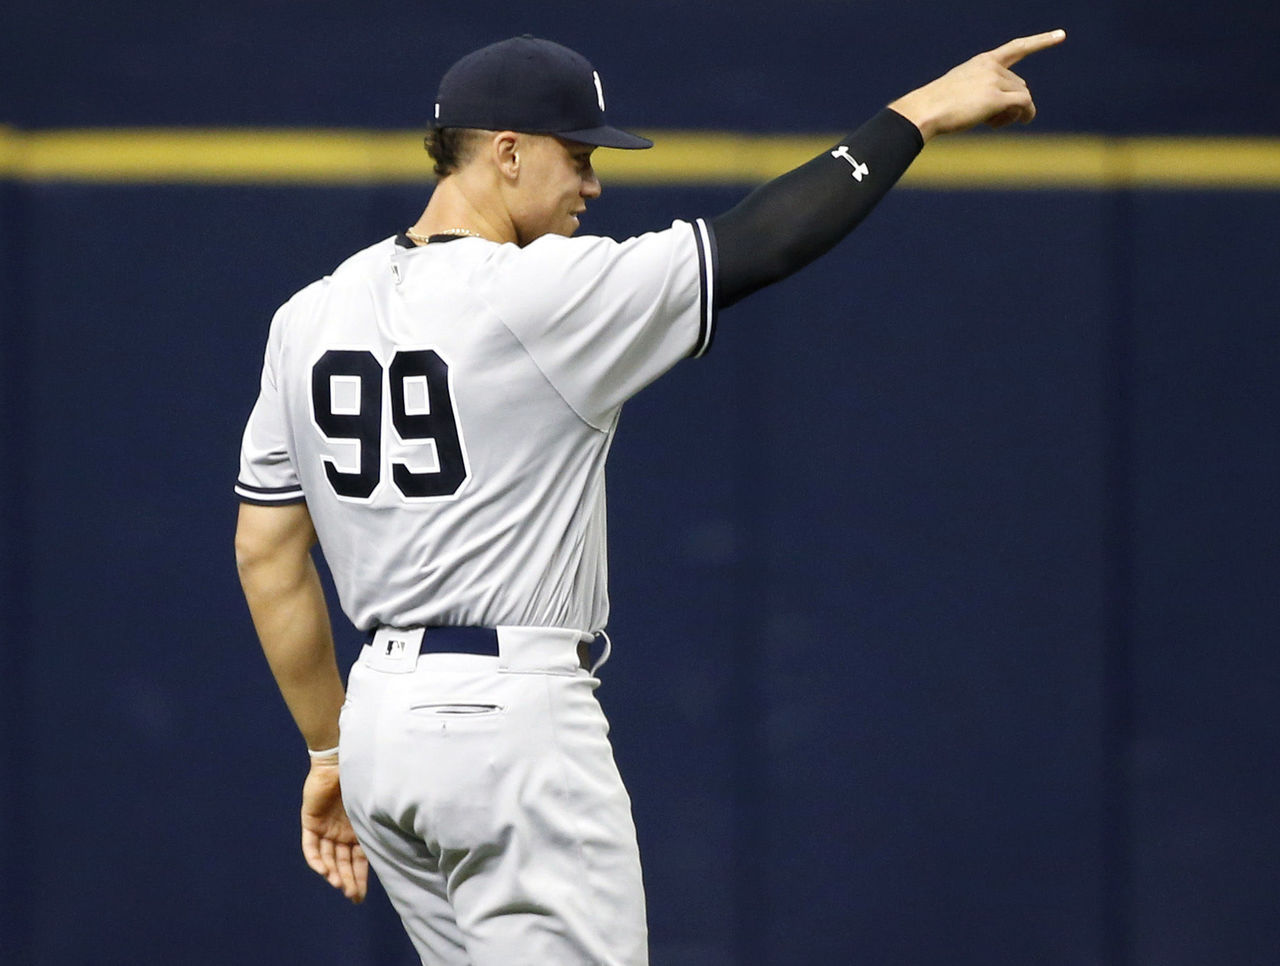 Cropped 2017 05 20t212549z 654373404 nocid rtrmadp 3 mlb new york yankees at tampa bay rays